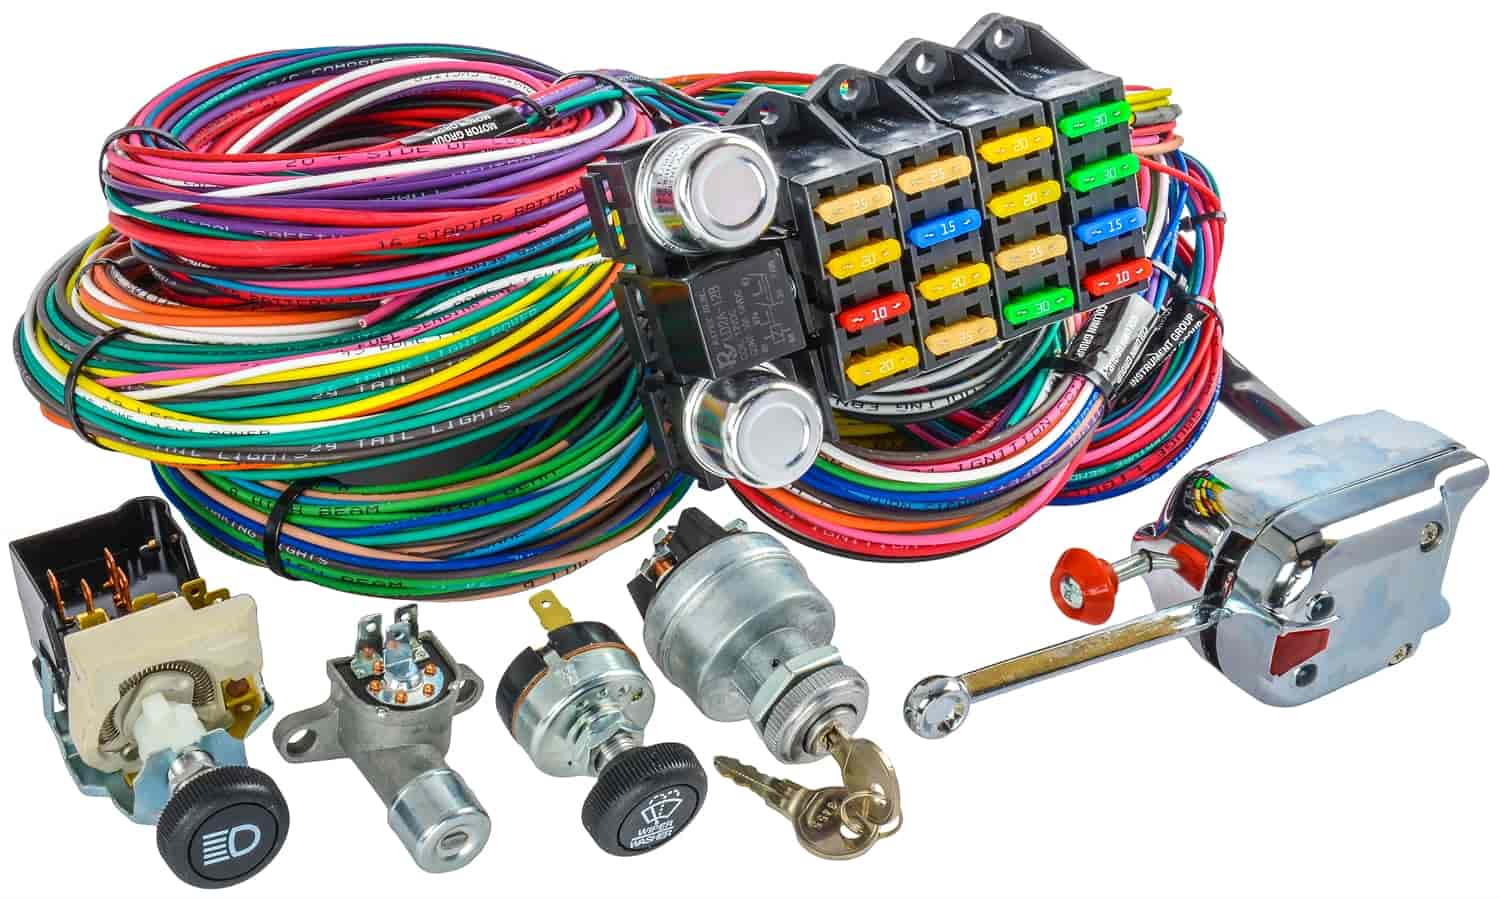 555 10405k jegs performance products 10405k universal wiring harness jegs universal wiring harness at nearapp.co